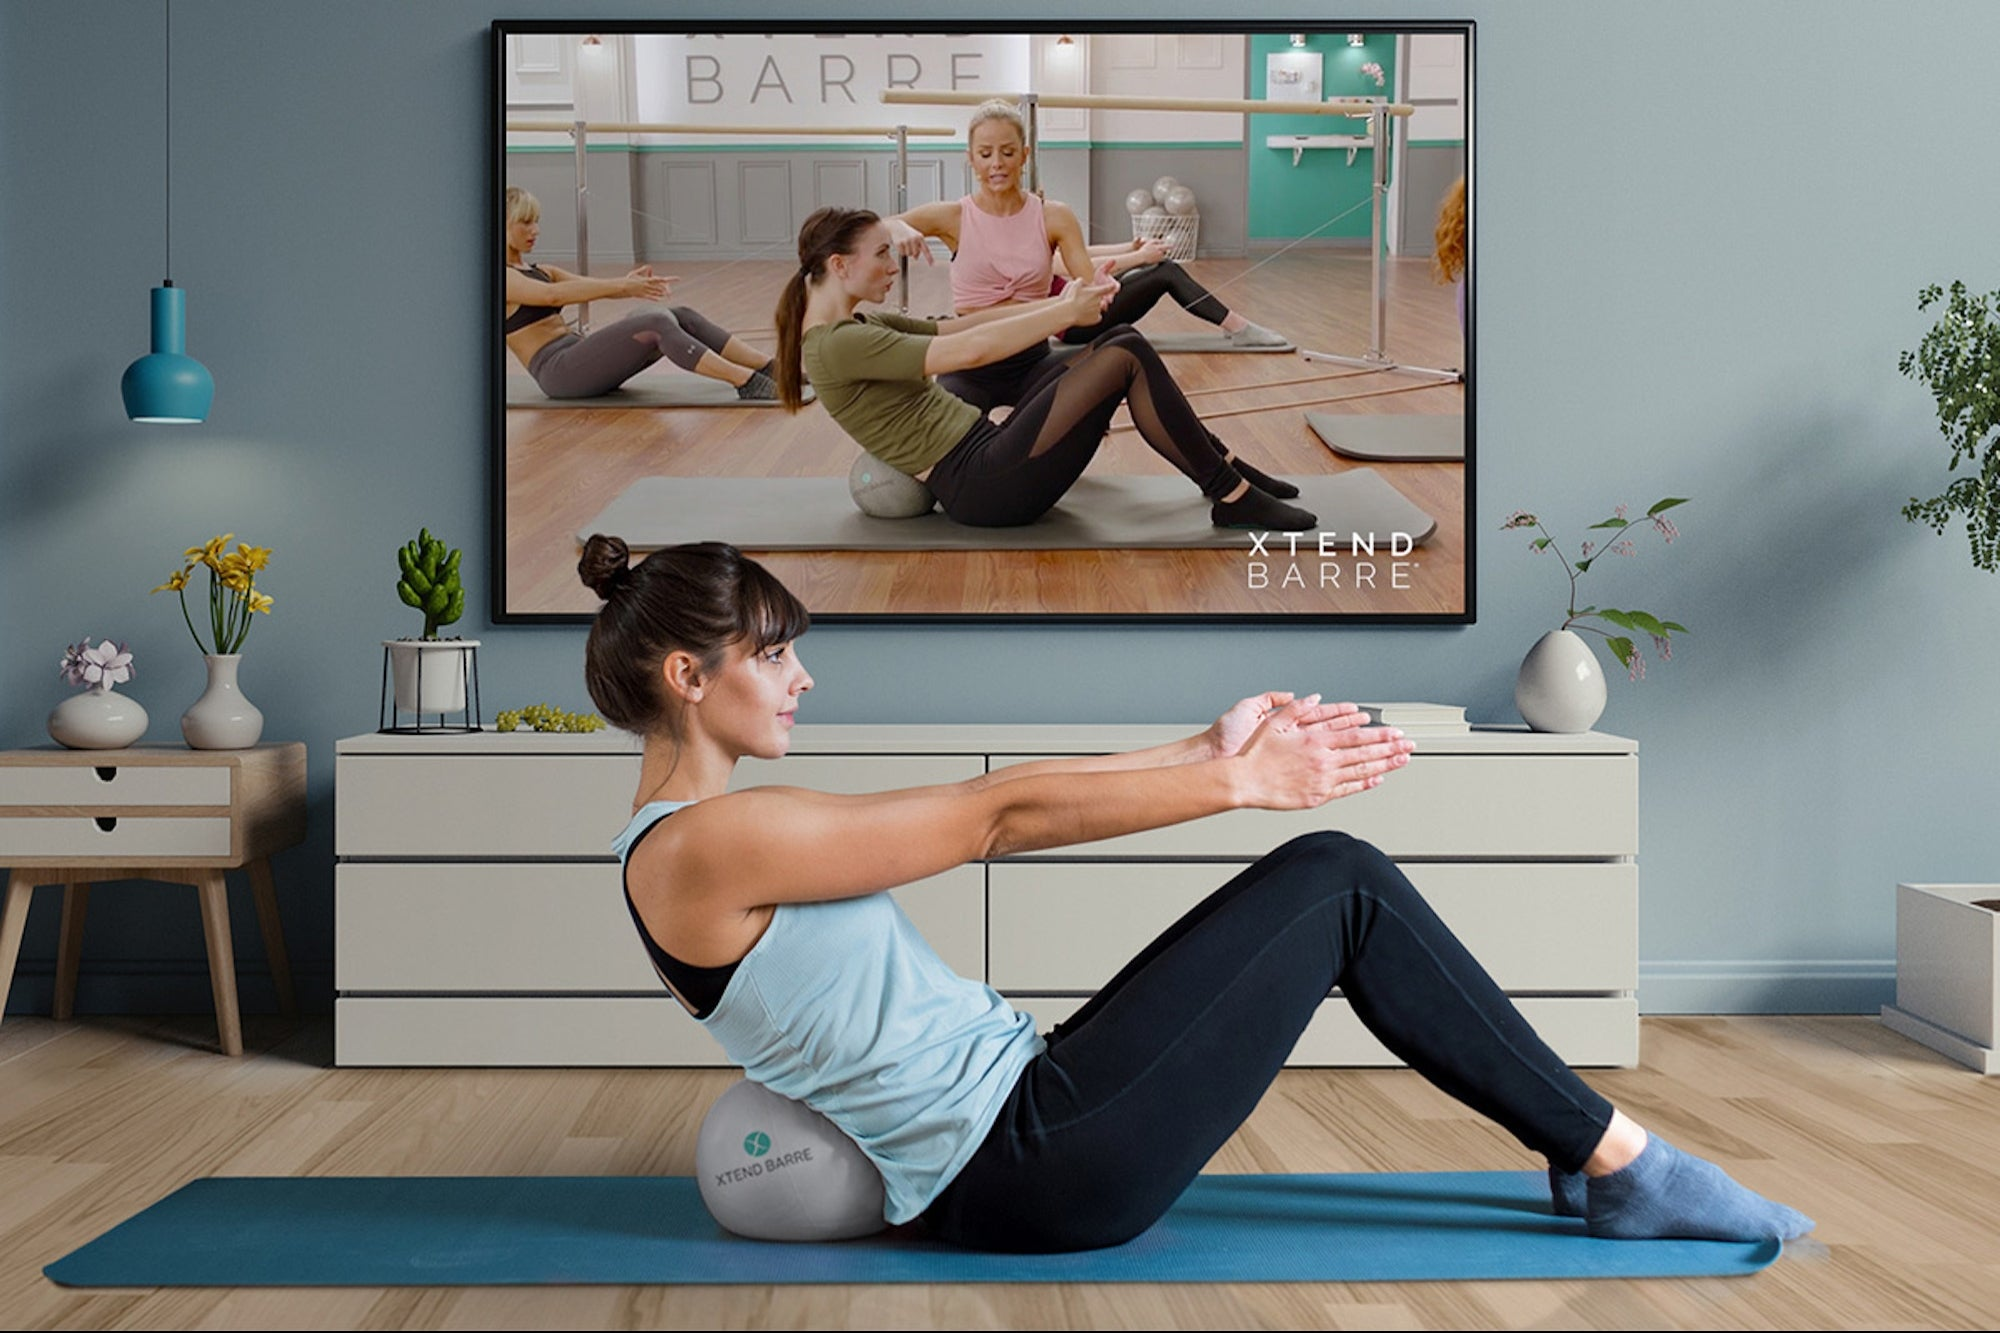 Get Two-Year Access to a Top Fitness App and a Massage Gun for One Price